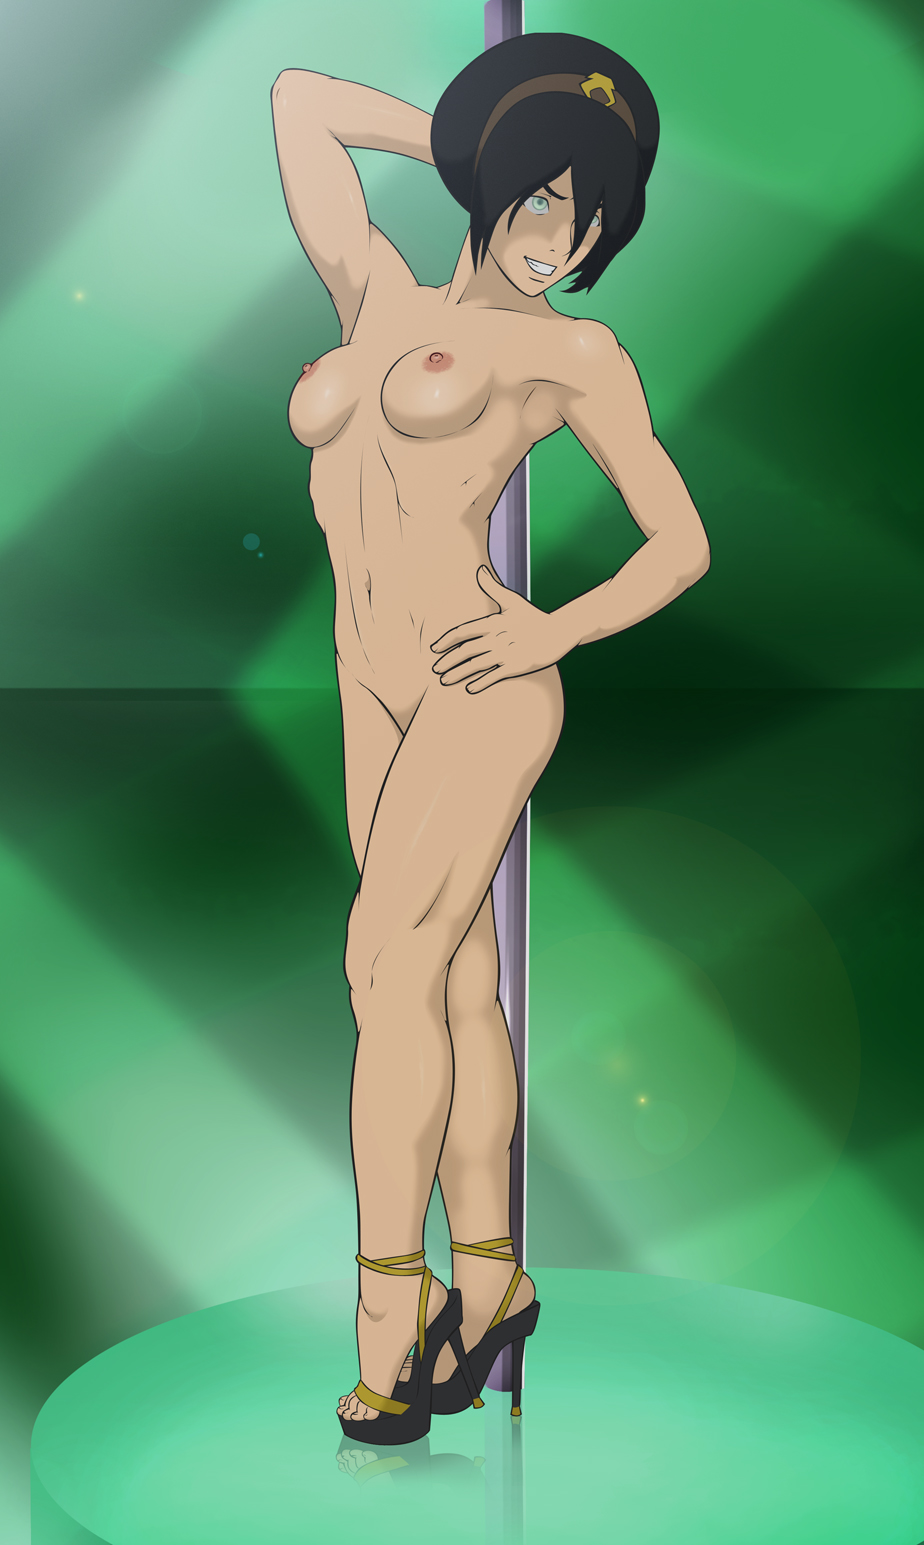 verdurous amy naked on gargantia planet the Phineas and ferb isabella naked